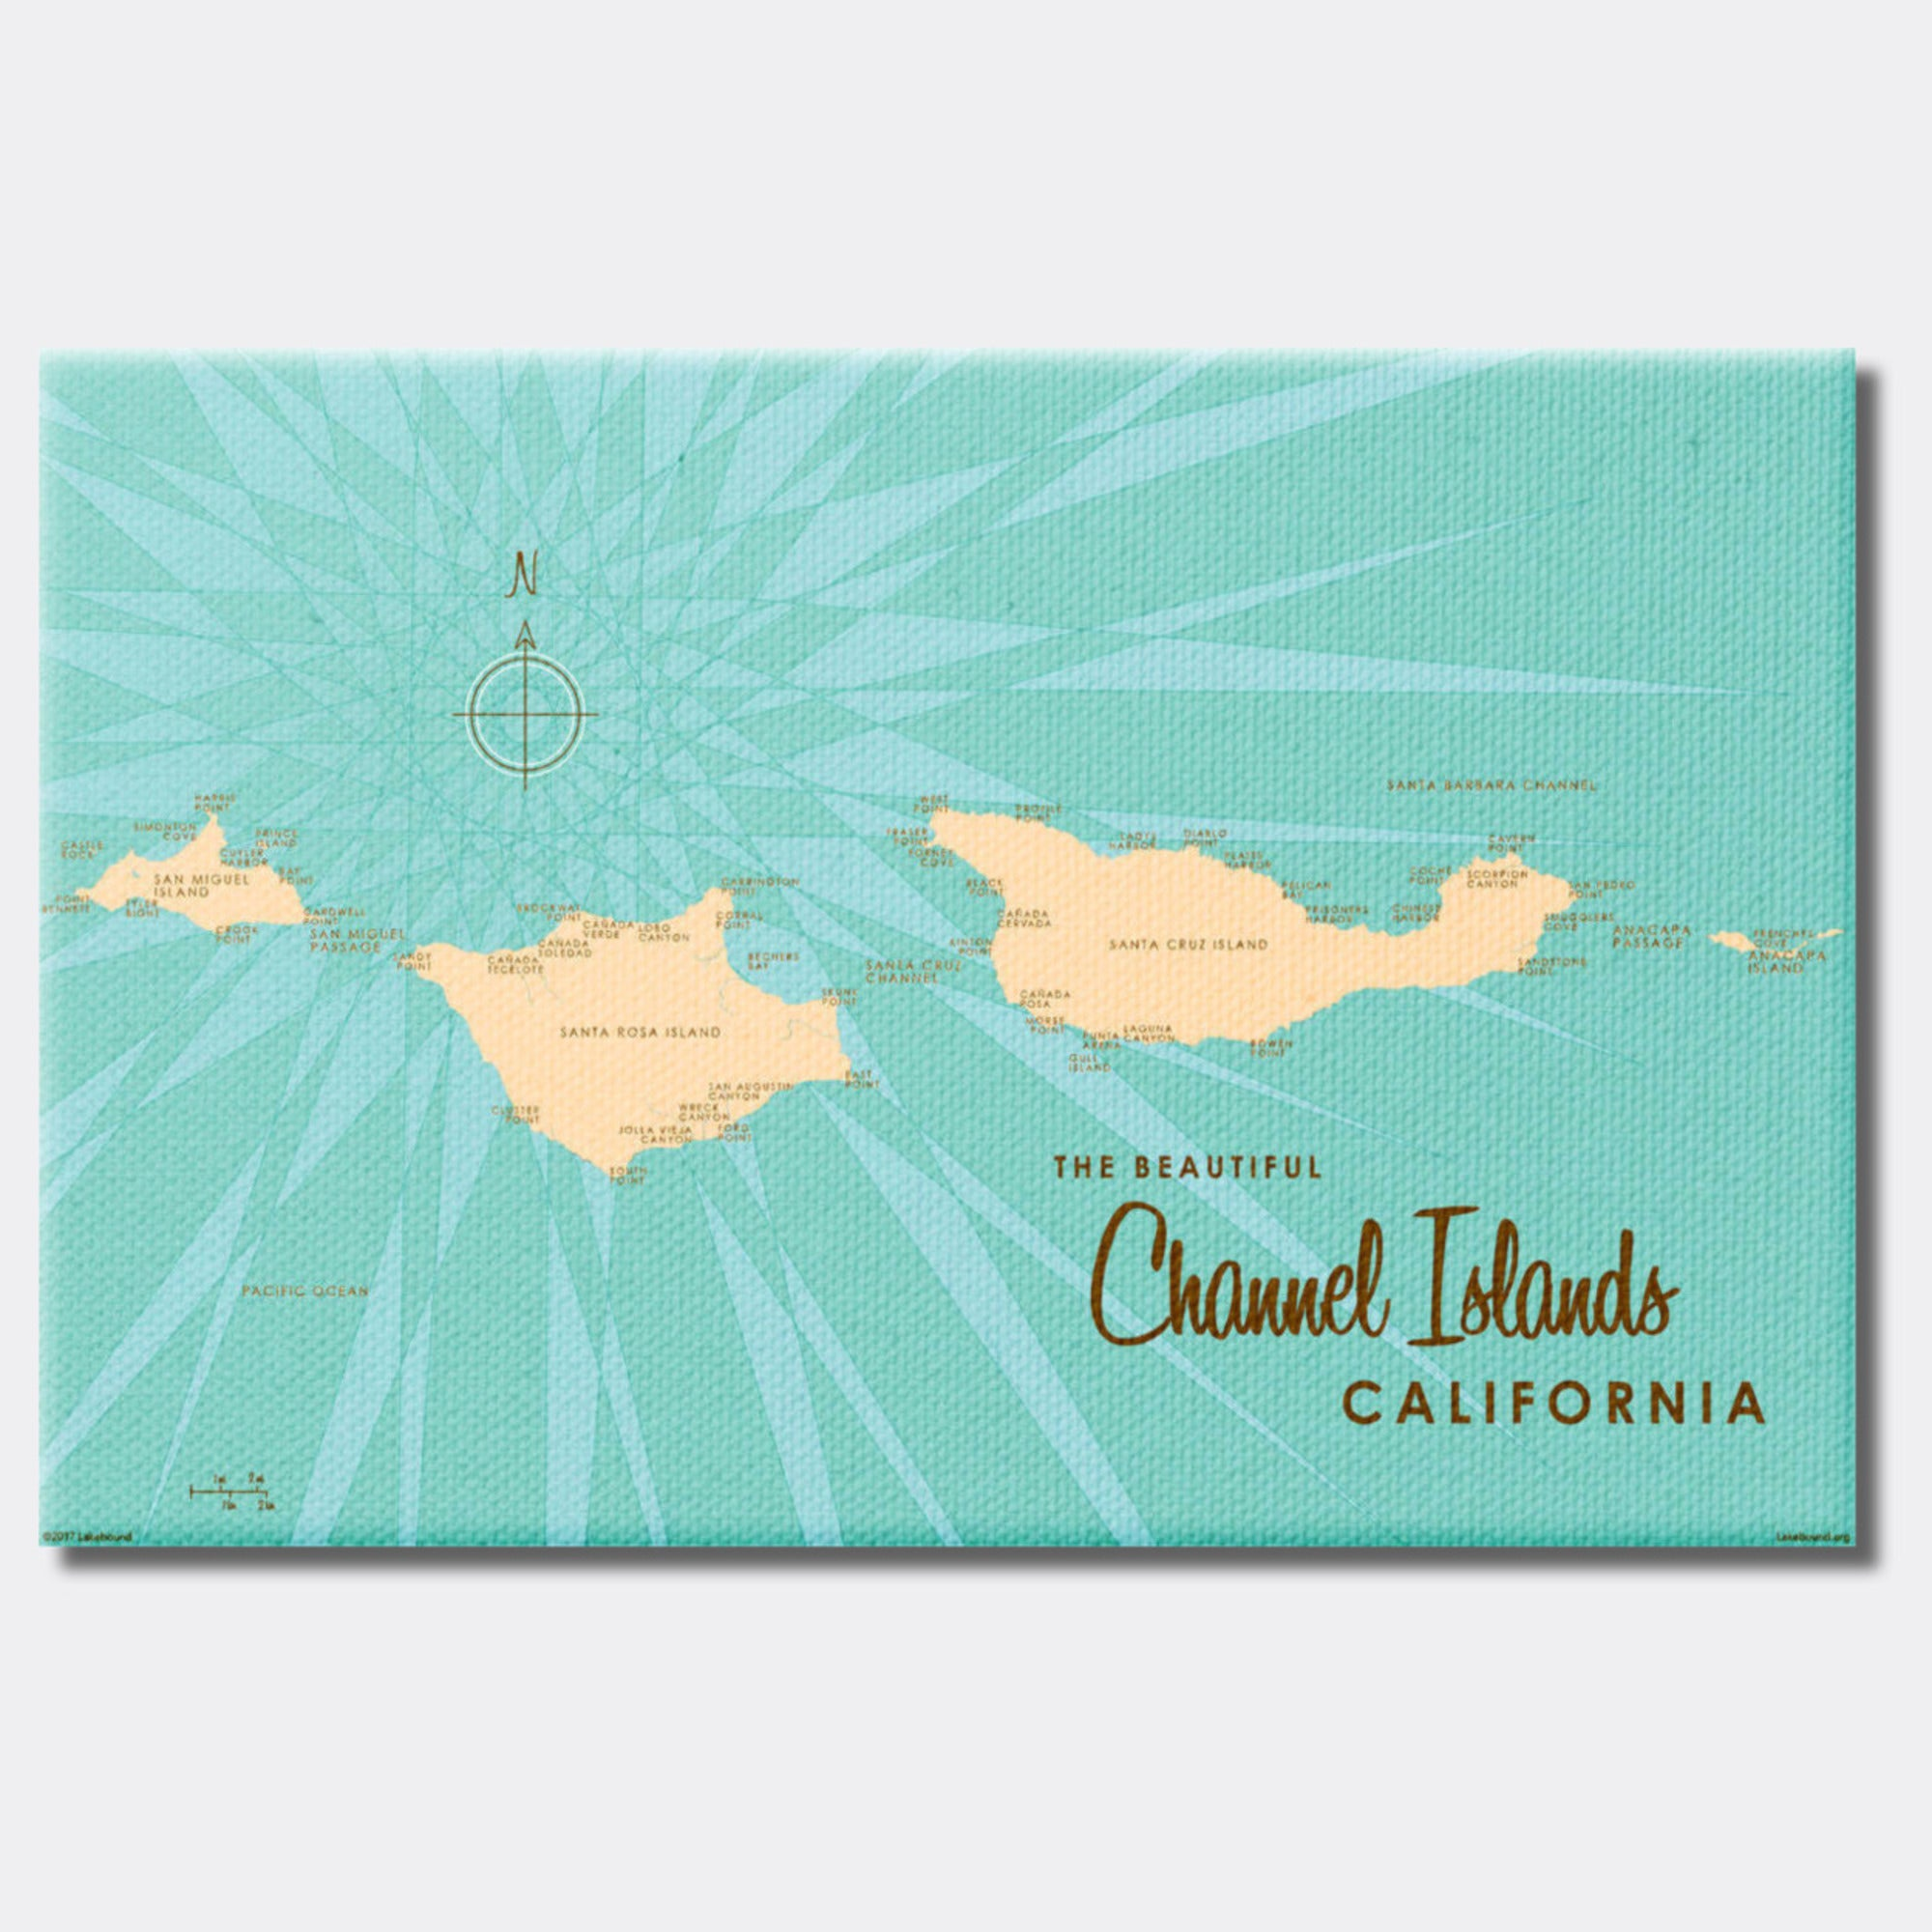 Channel Islands California, Canvas Print